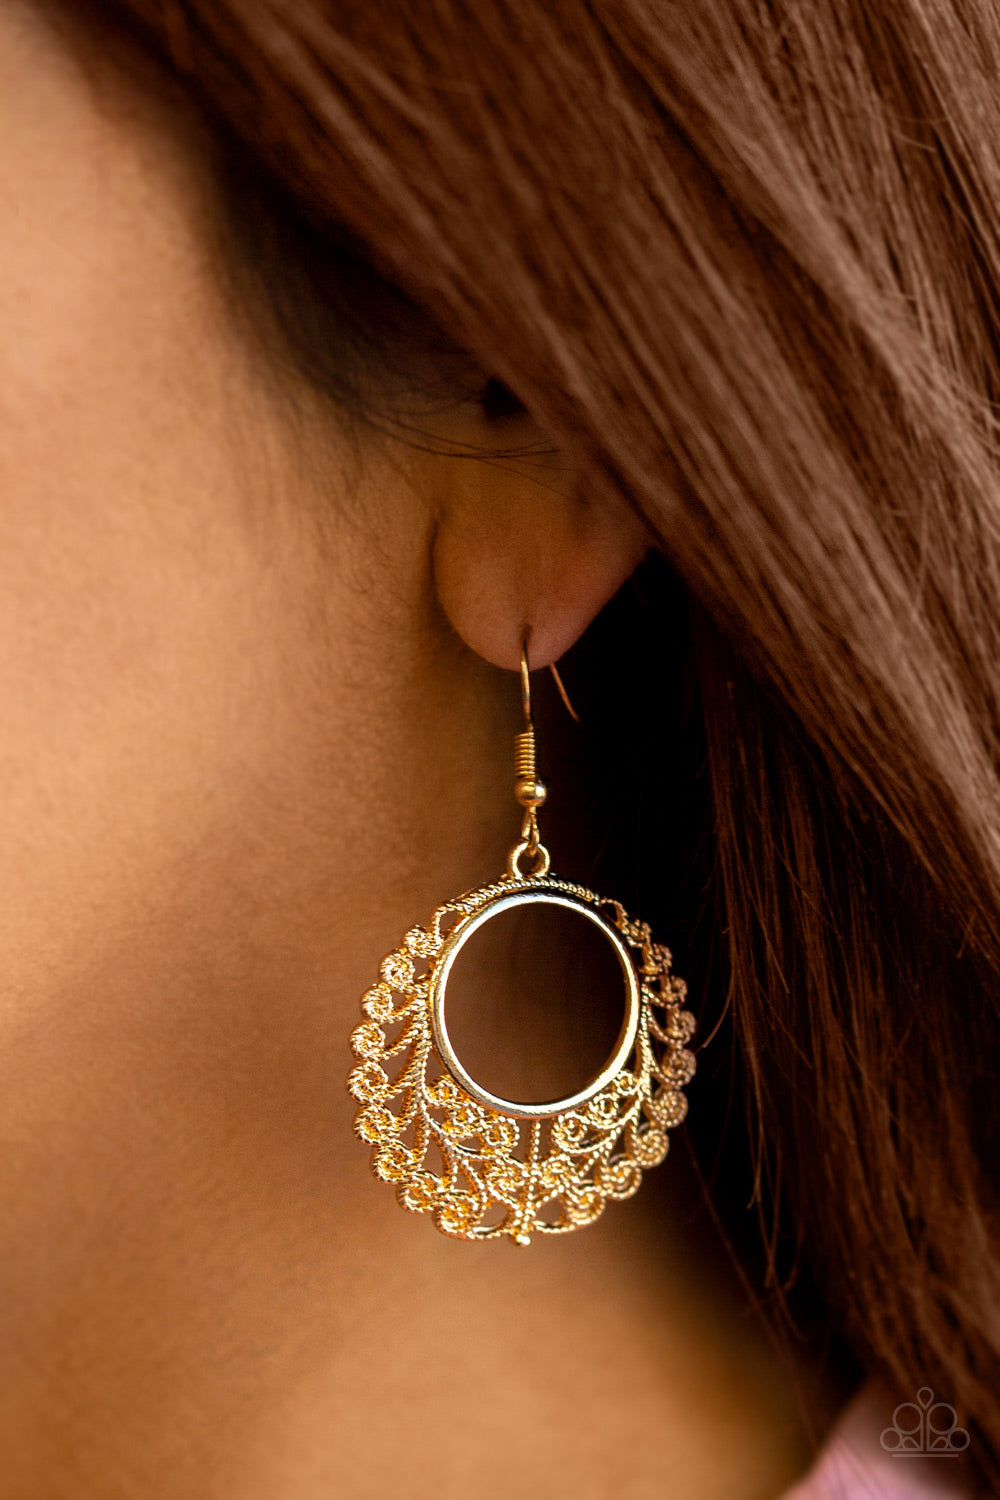 Paparazzi Jewelry & Accessories - Grapevine Glamorous - Gold Earrings. Bling By Titia Boutique